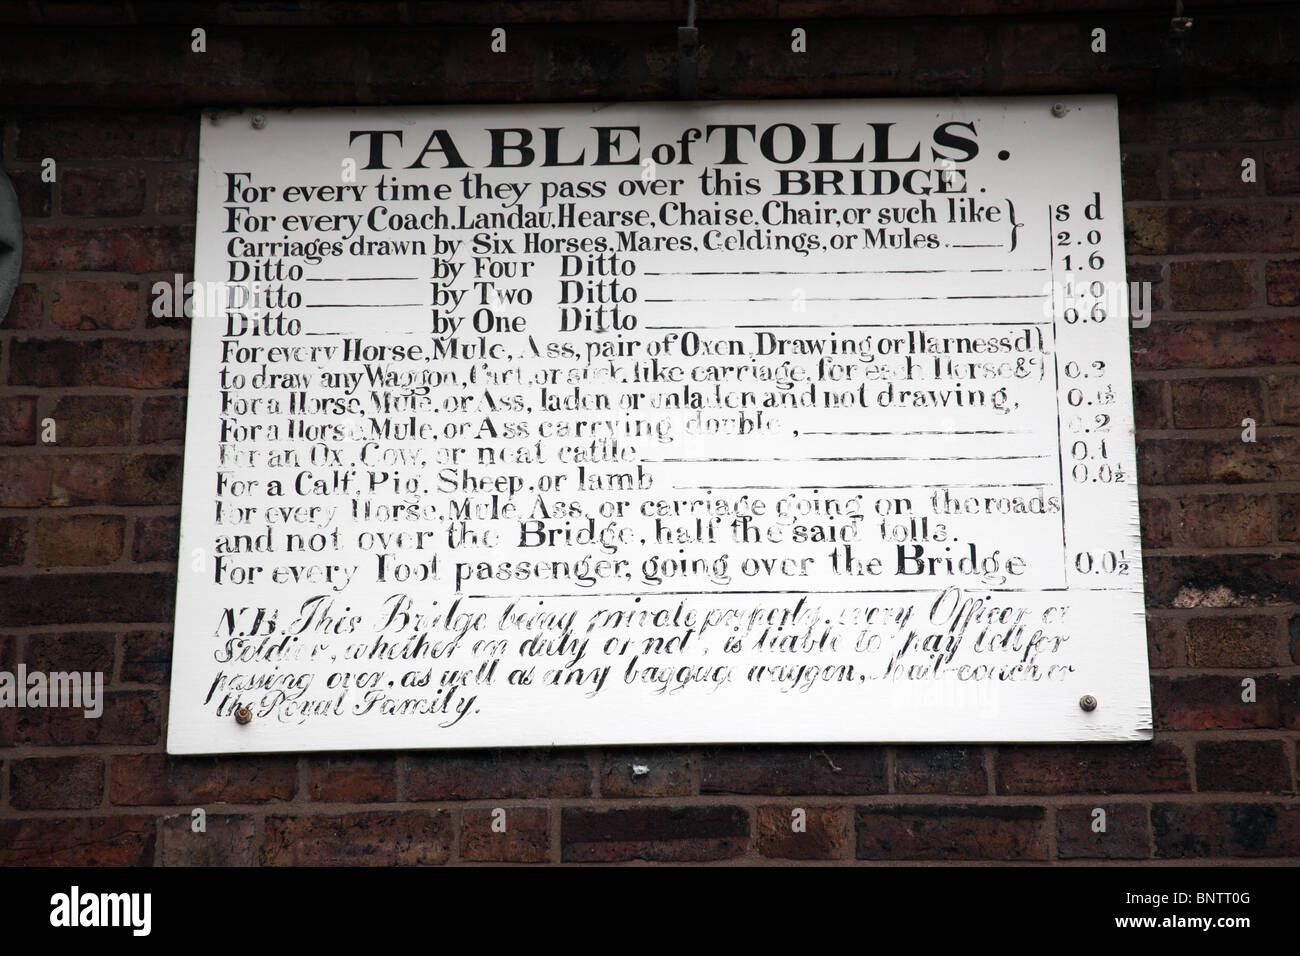 Table of Tolls; Sign on the toll house at the bridge; Ironbridge Gorge, Shropshire - Stock Image